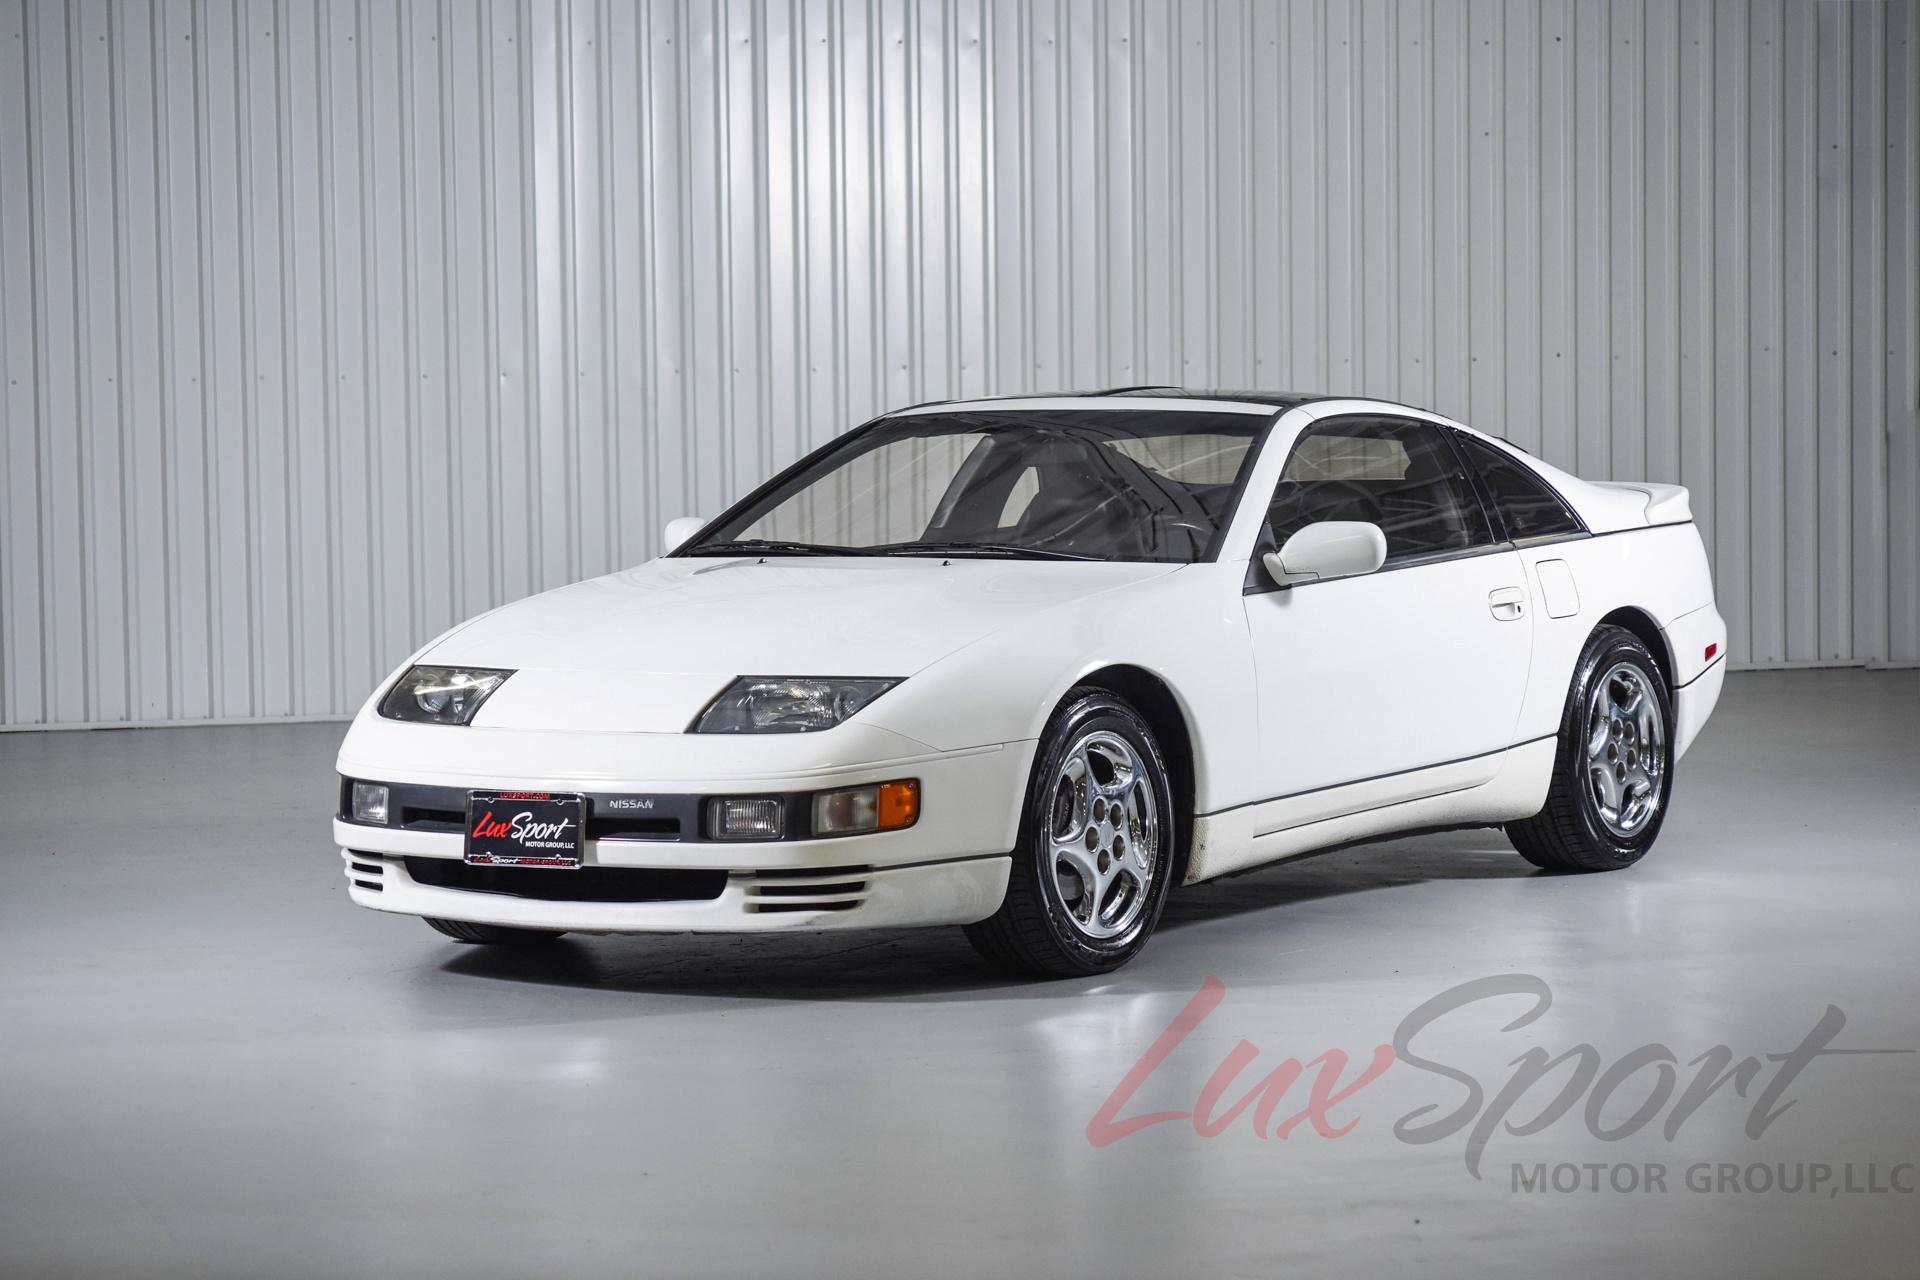 1990 nissan 300zx turbo coupe 2 door ebay. Black Bedroom Furniture Sets. Home Design Ideas